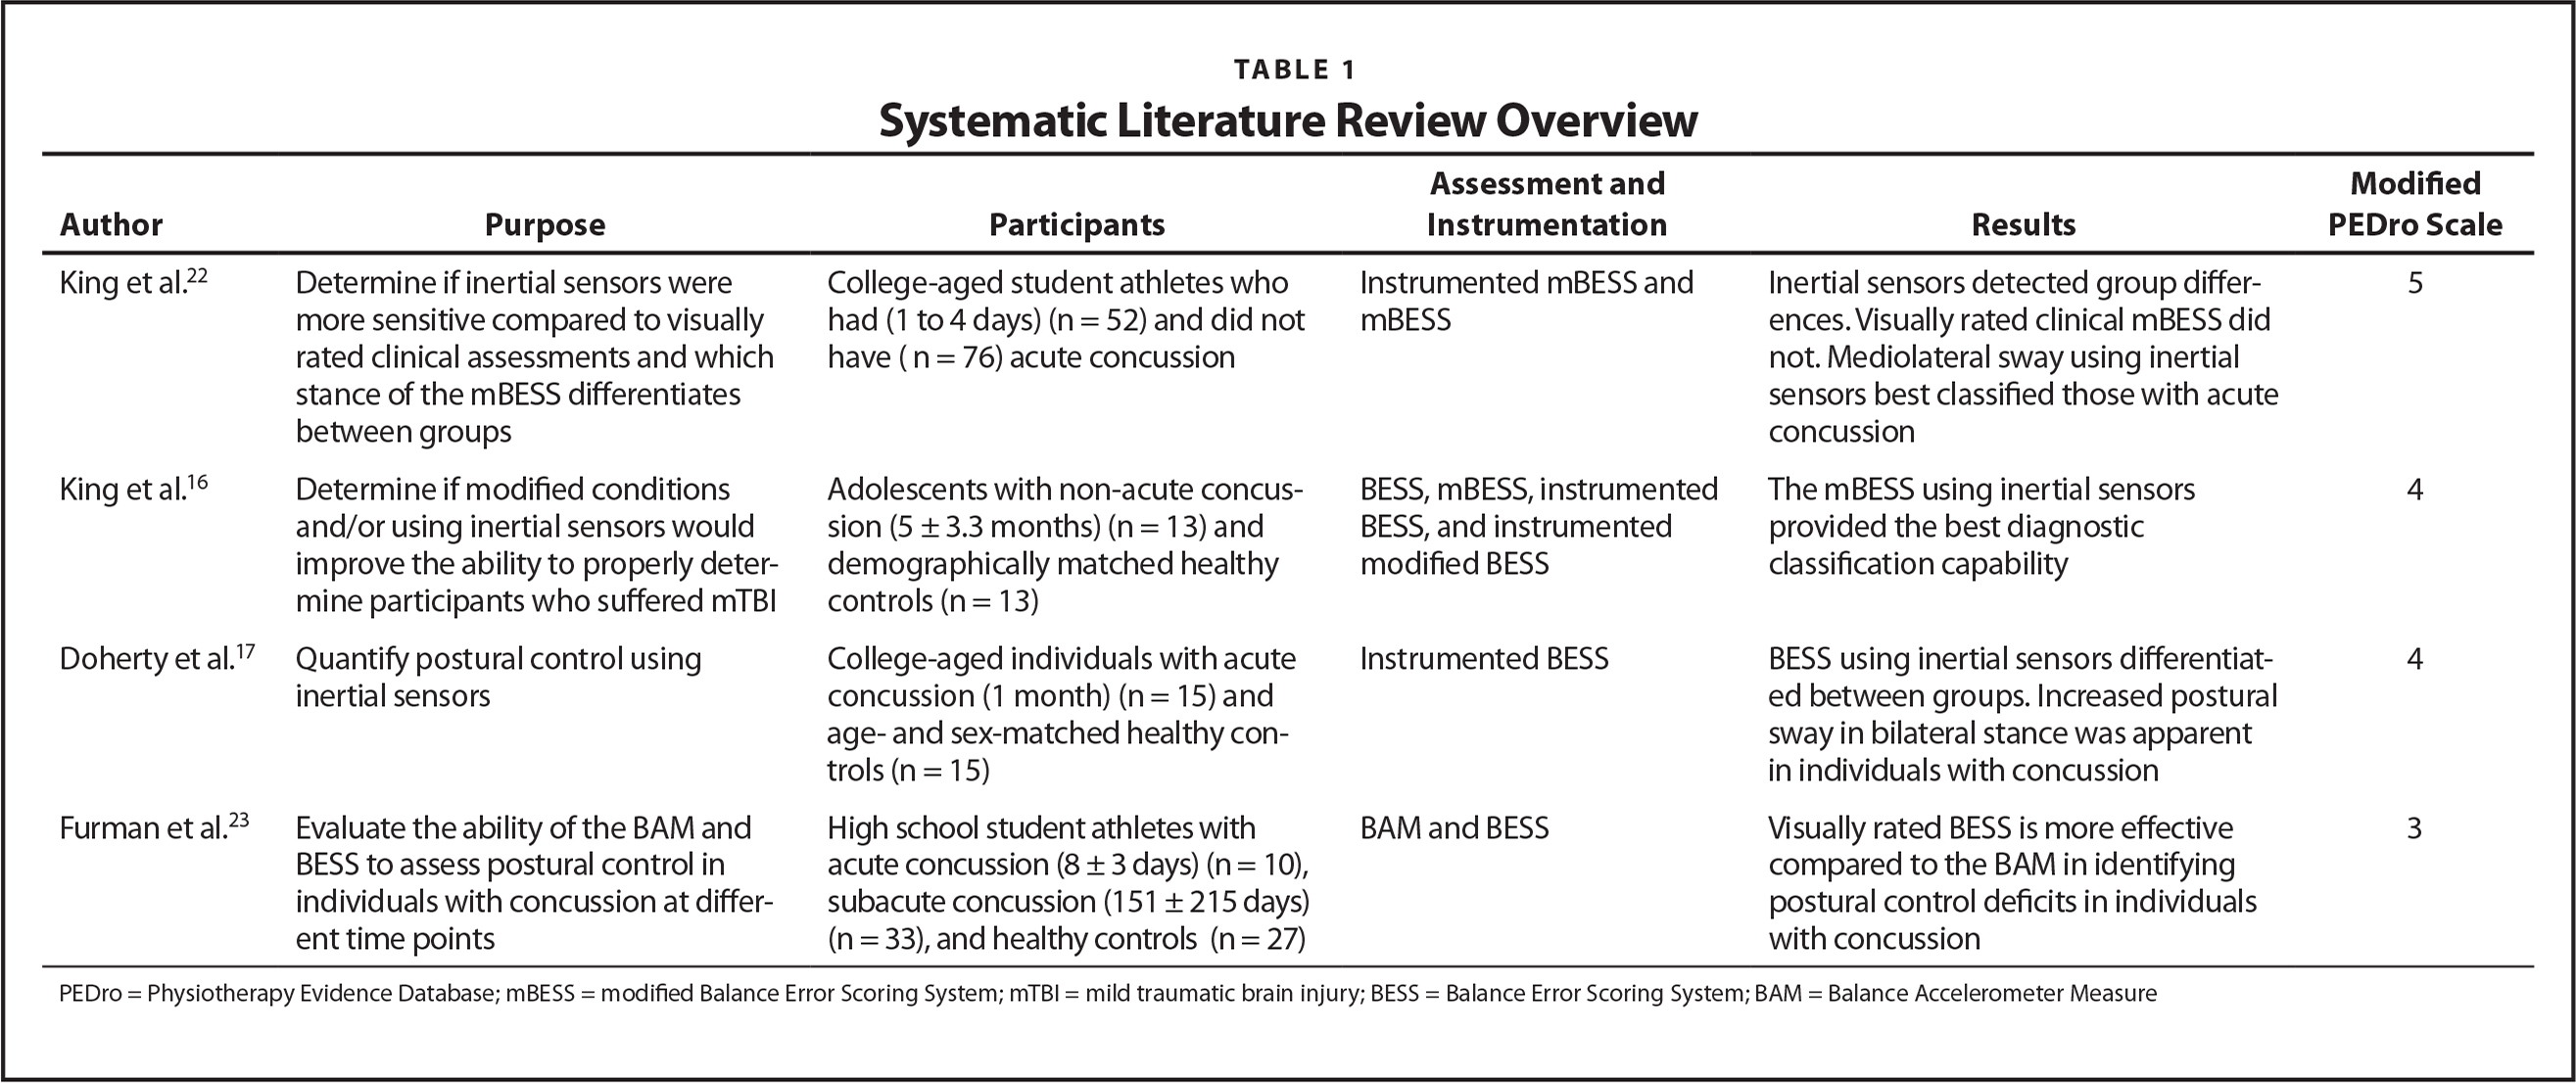 Systematic Literature Review Overview